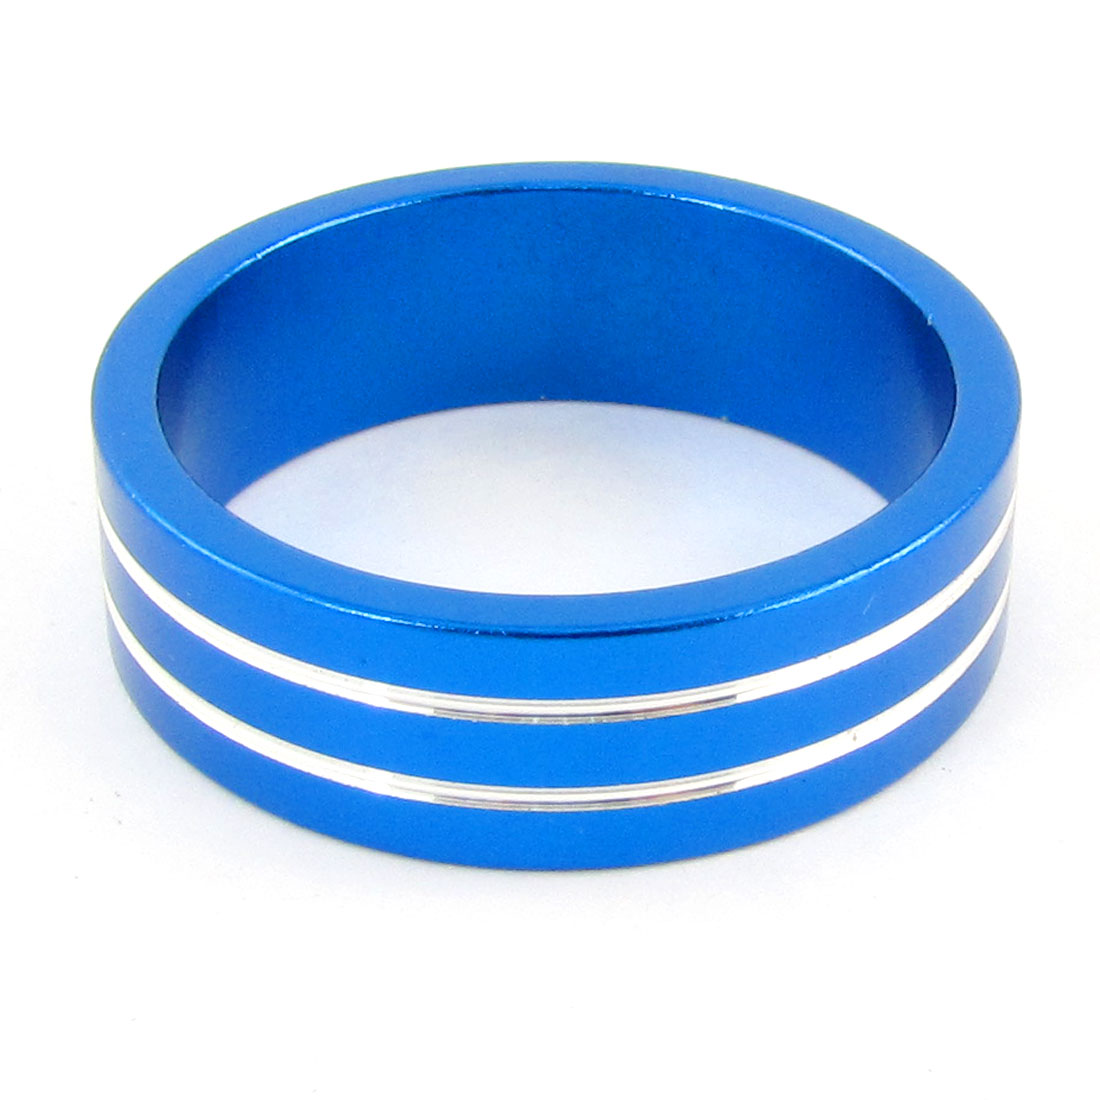 "Durable 1.1"" Diameter Mountain Bike Bicycle Parts Blue Headset Spacers"